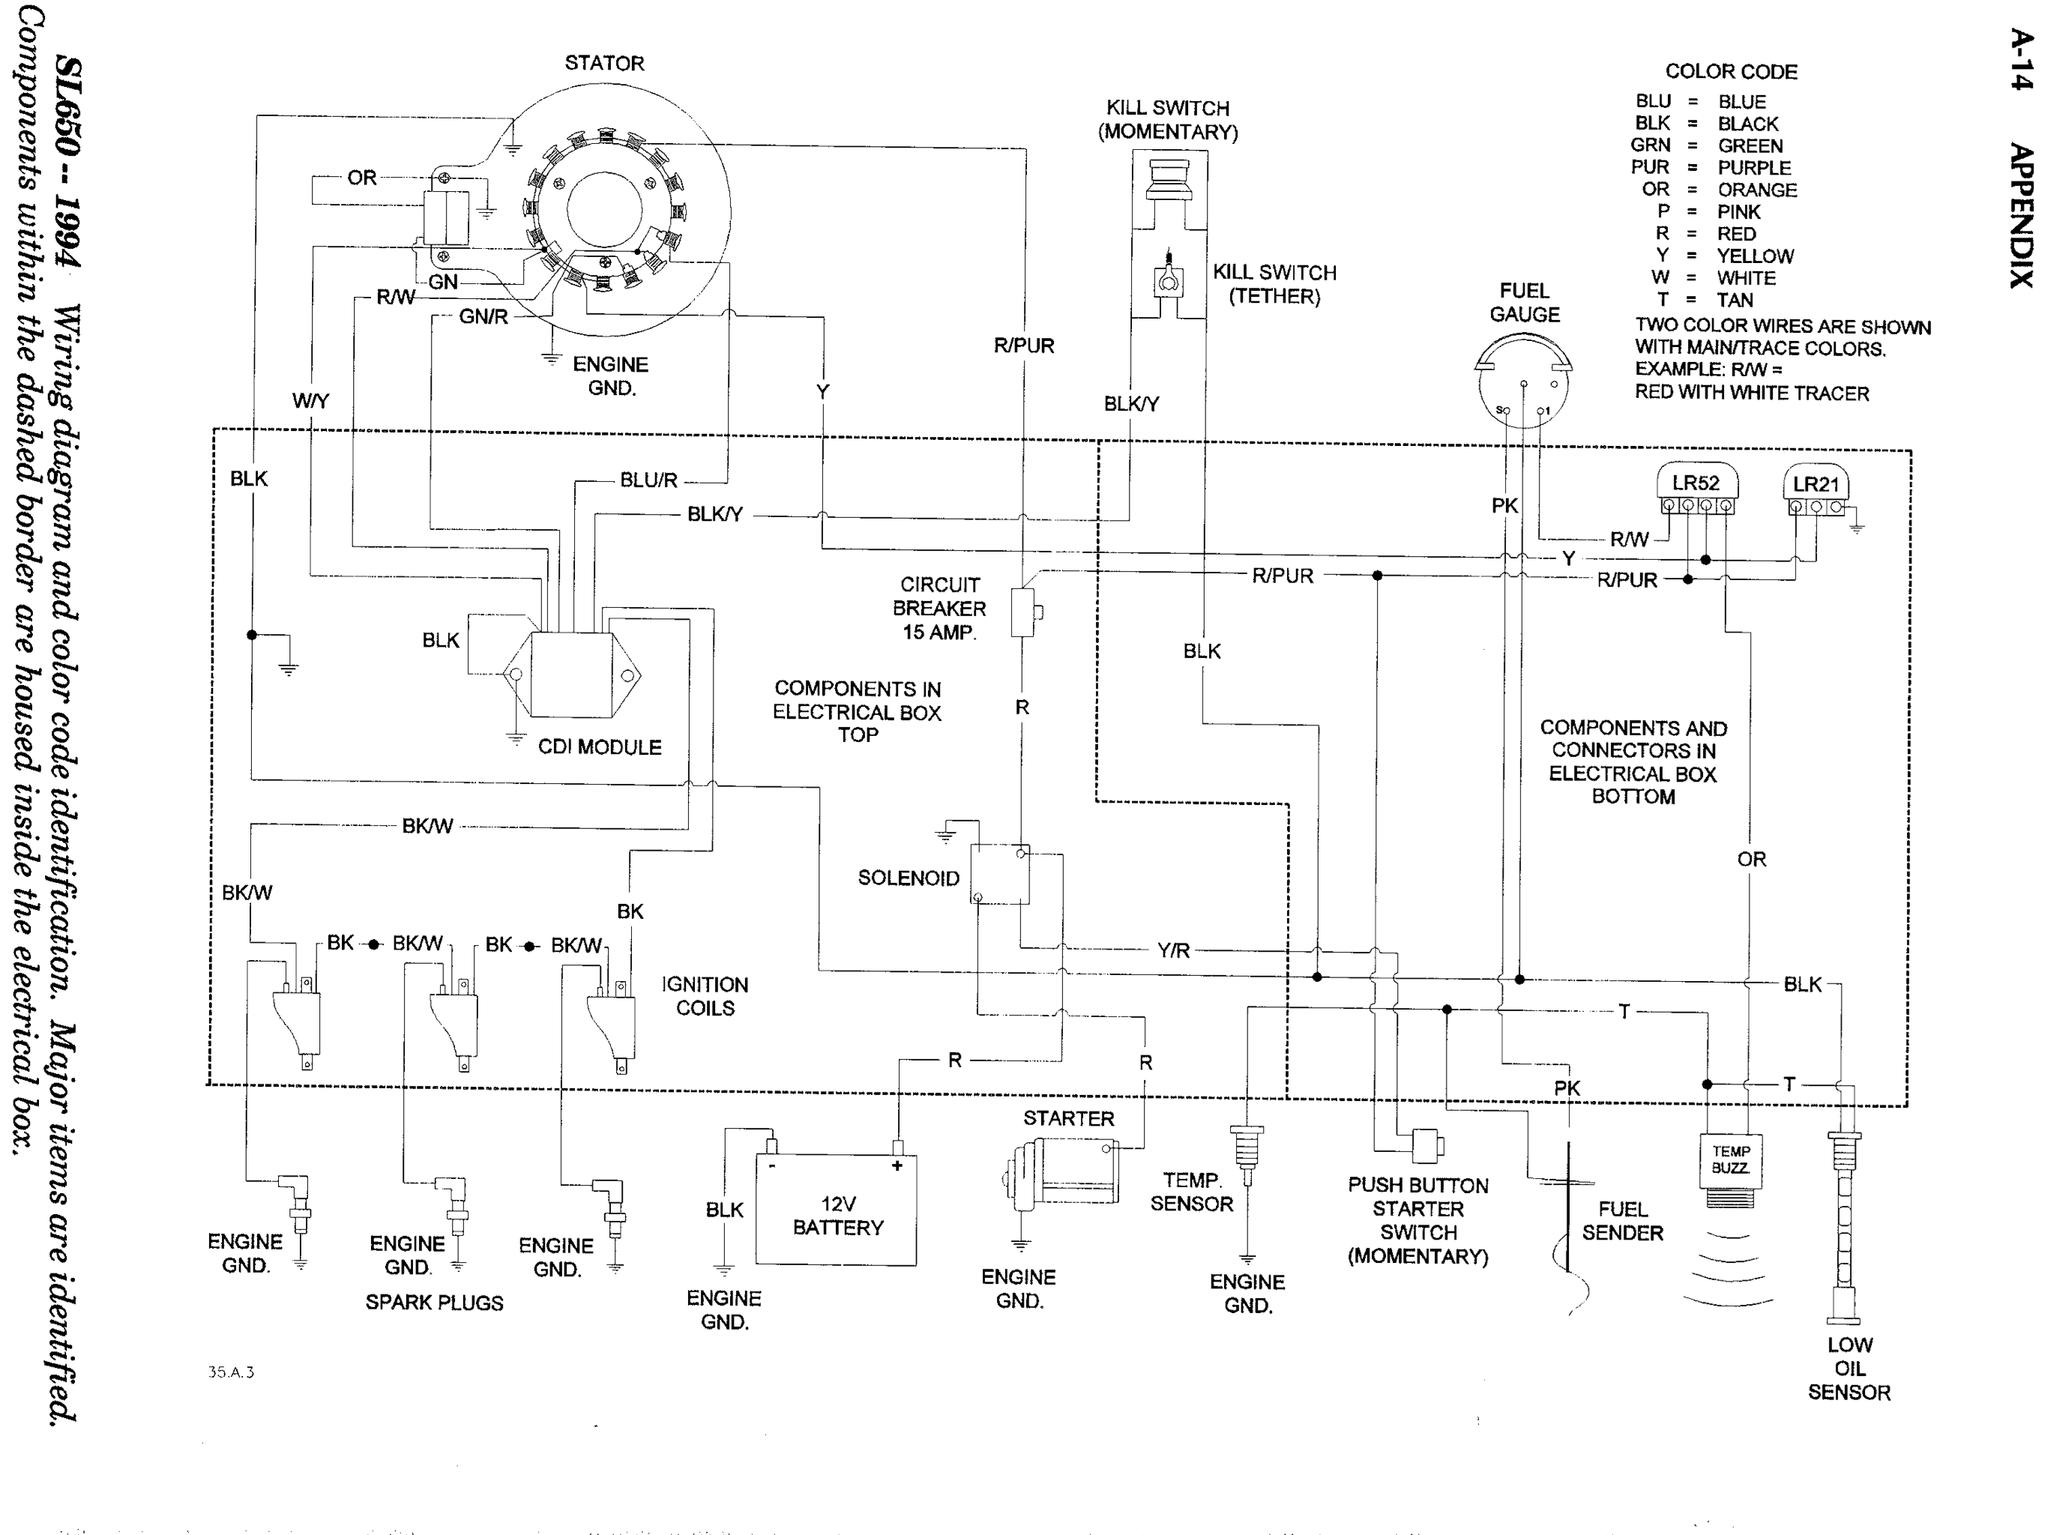 Sl 650 Kill Switch Intermittent Wiring Diagram On 1995 Kawasaki Jet Ski There Is Electronics To Hold The Ignition Until Engine Completely Stops It Inside Sealed Cdi Module